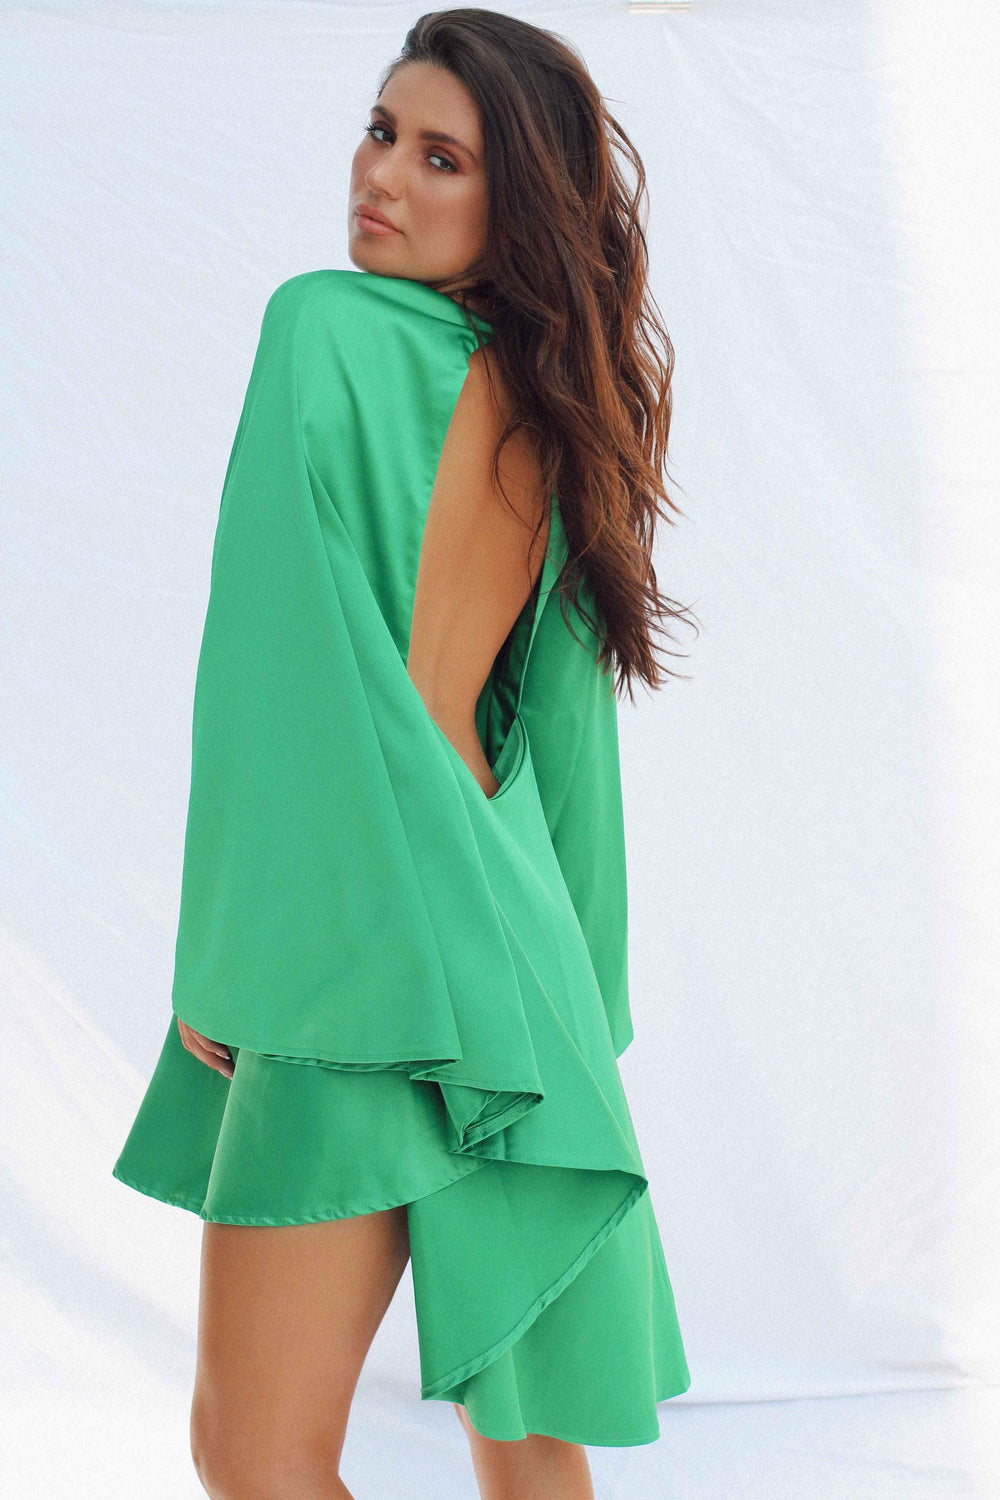 AZRA BACKLESS DRESS IN GREEN | Women's Online Shopping | CHICLEFRIQUE